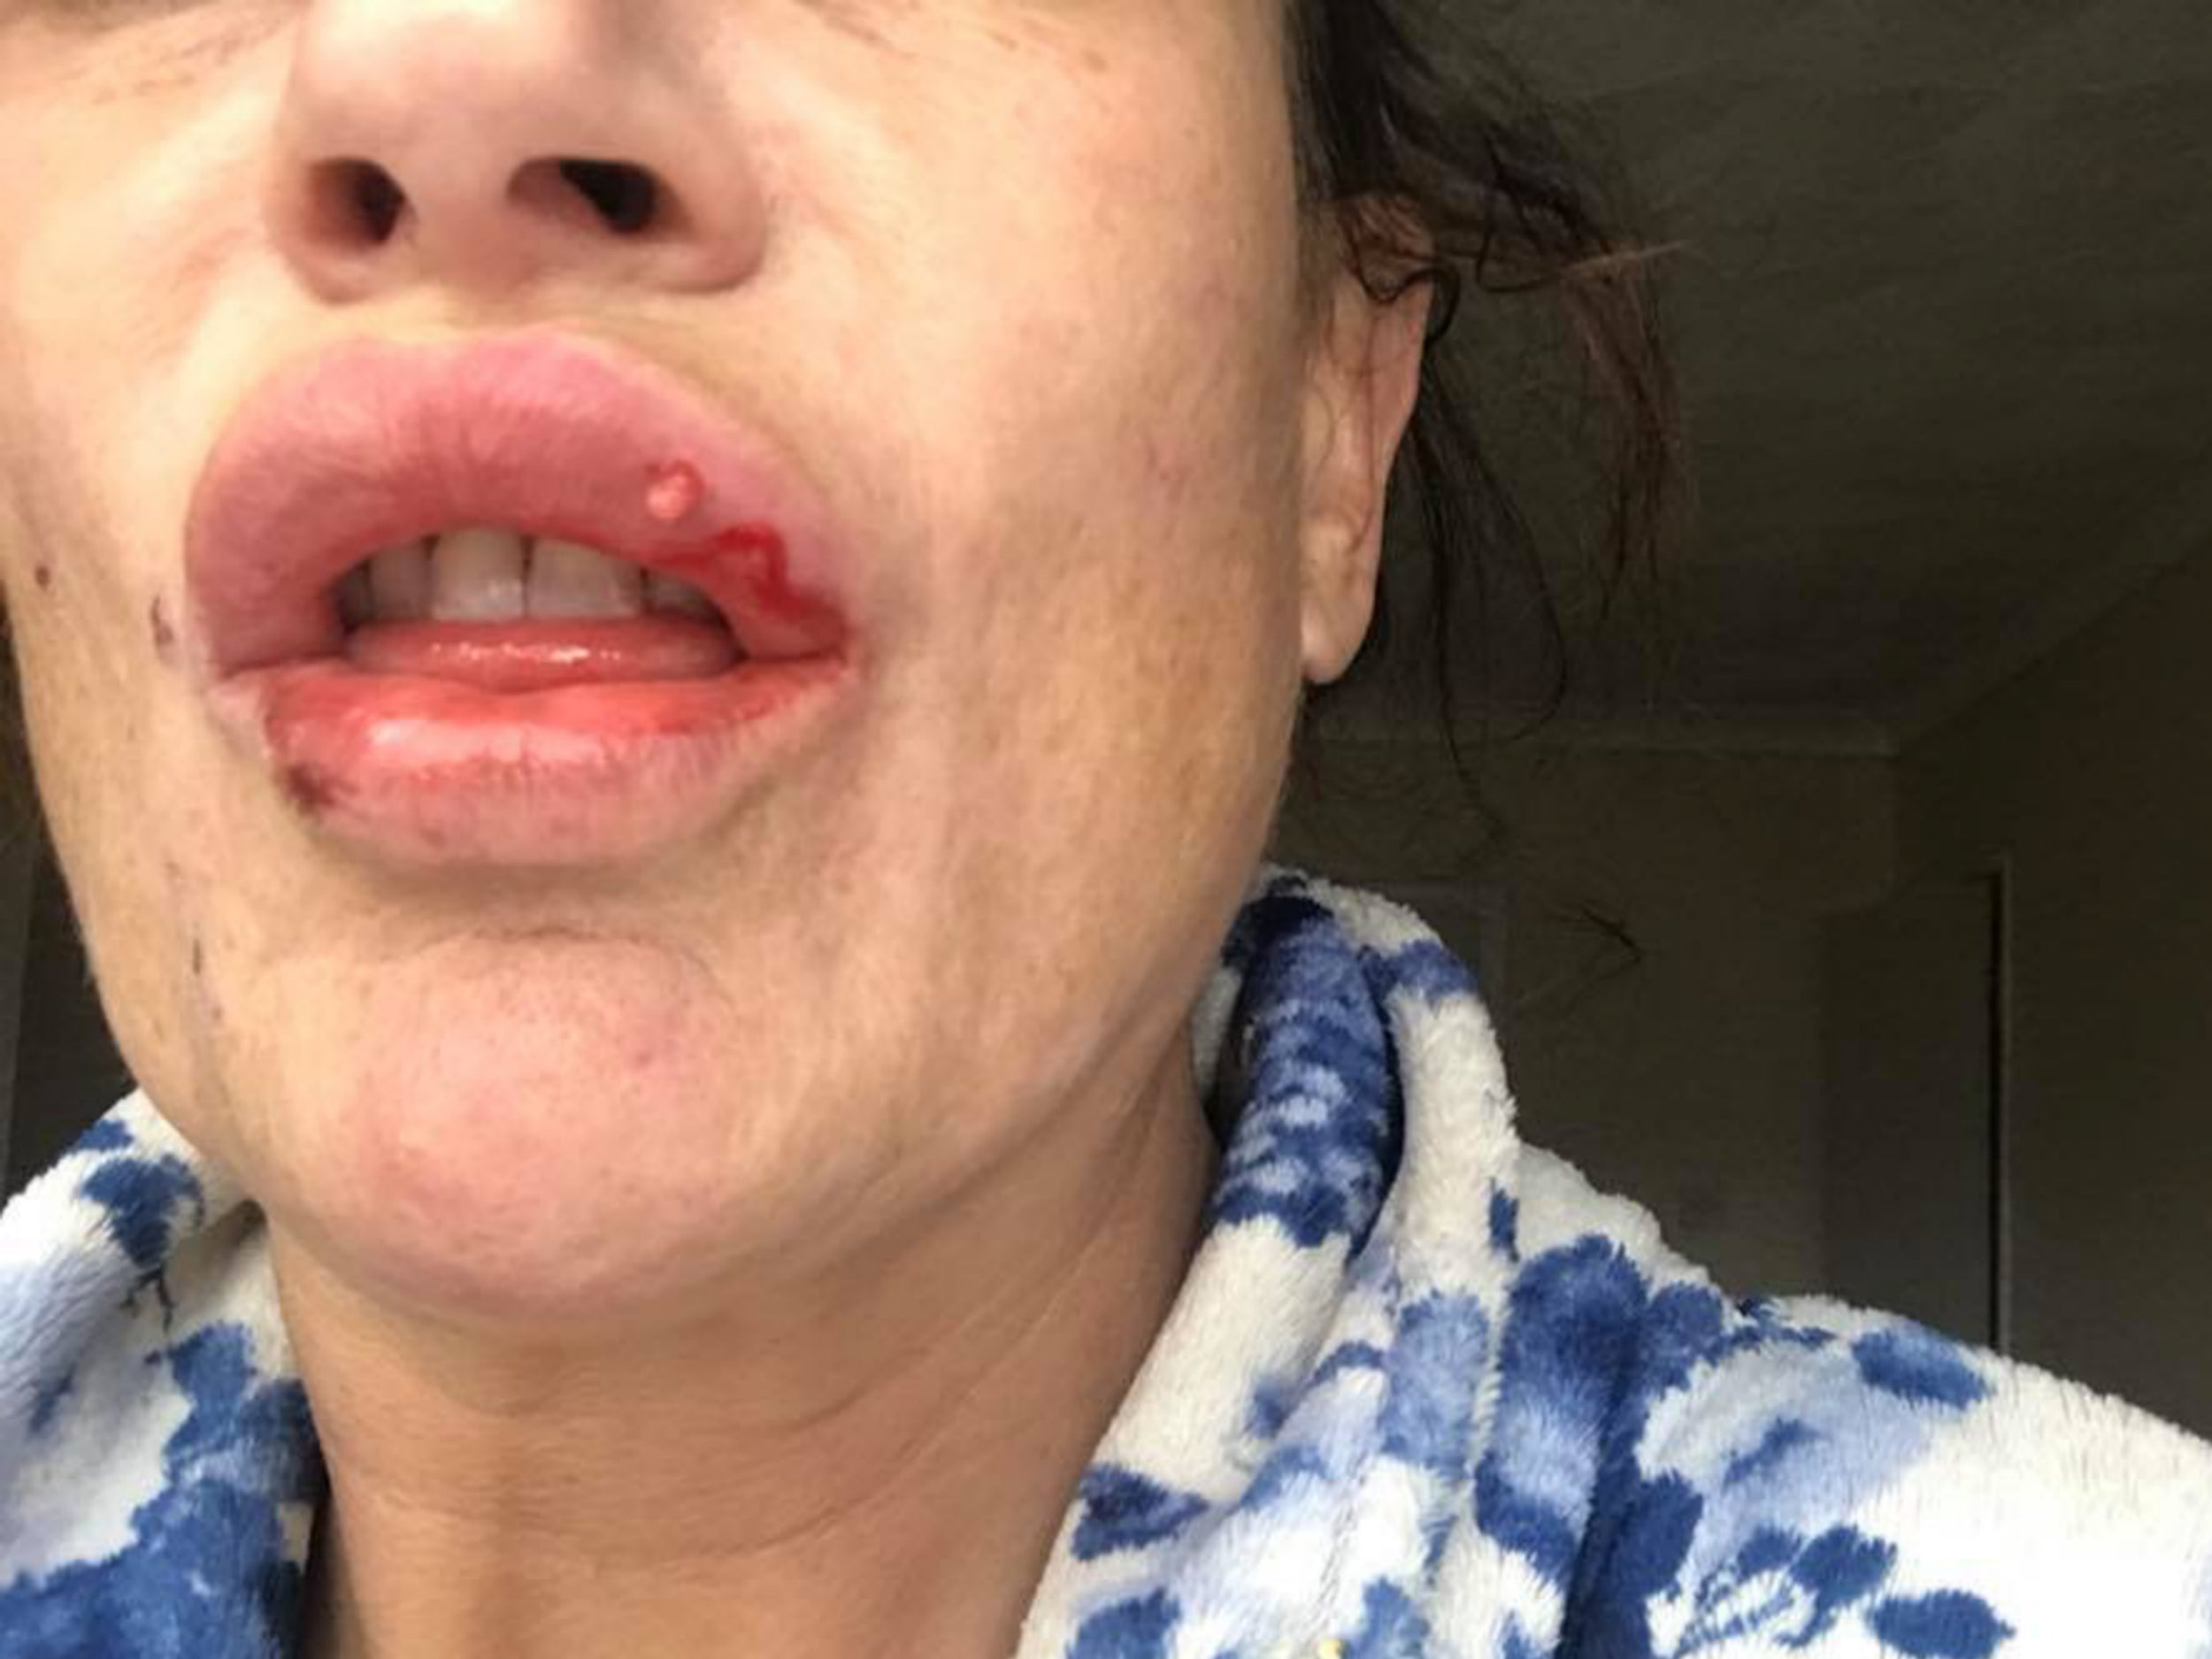 MERCURY PRESS. 17/01/19. Pictured: Tracy Bates, 44, after the lip filler went horribly wrong. A mother-of-three has issued a lip filler warning after the surgery left her lips covered in sores and scars. After having lip fillers numerous times before, Tracy Bates, 44, decided to get a 2ml top up to keep her lips full. However, days after spending the ?140 to get both lips enhanced, Tracy noticed that her lips were more swollen and bruised than usual. SEE MERCURY COPY